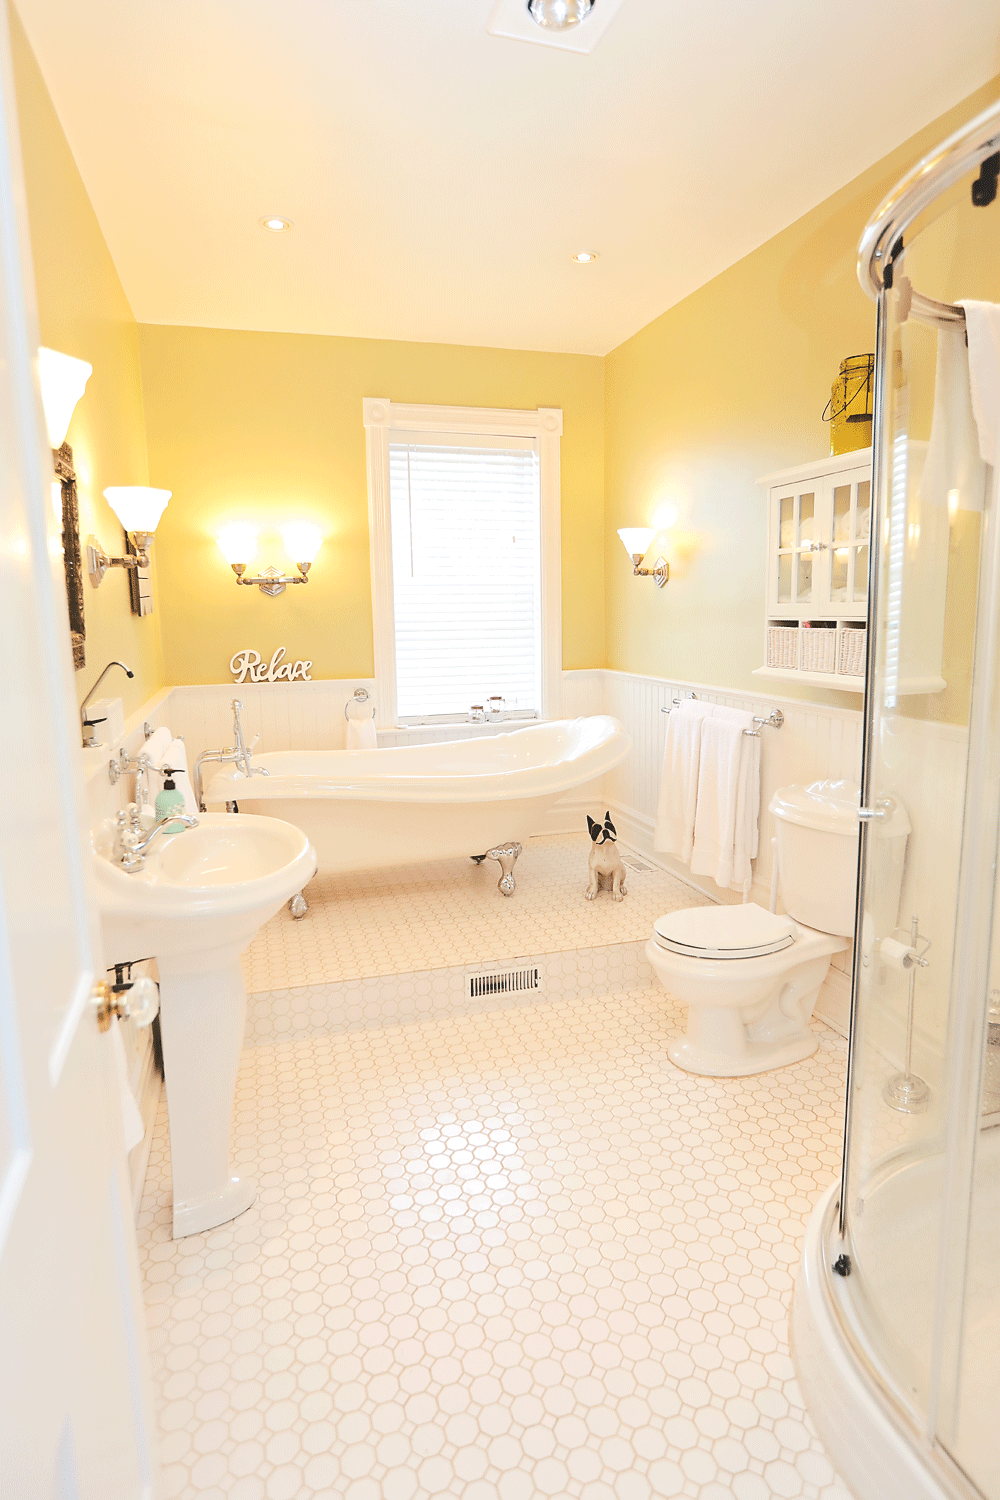 bathroom escape - At the end of a busy day, escape into the glorious full bathroom, complete with a clawfoot tub, and views of the Beaver Valley. A shower stall is also available. There is a second 2 piece bathroom located in the mudroom.